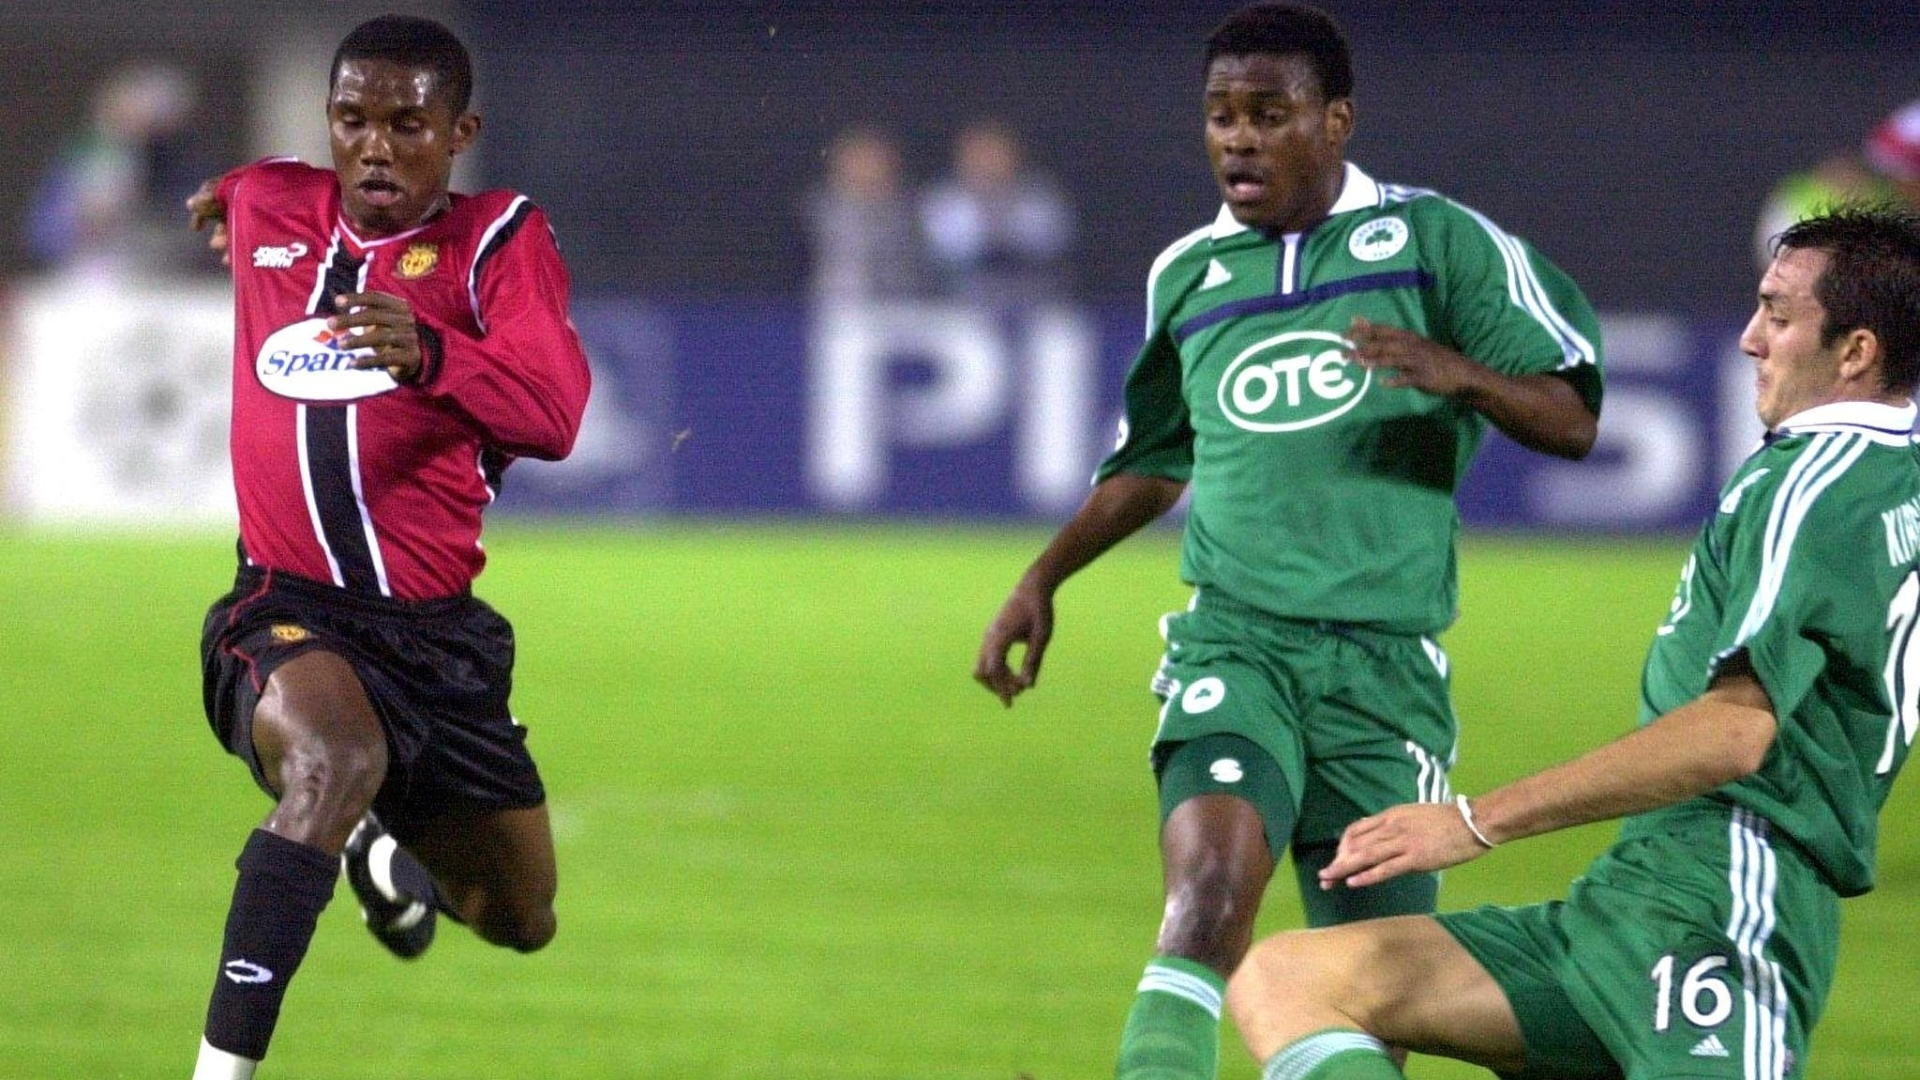 Mallorca's Samuel Etoo of Cameroon (L) powers past Panathinaikos Athens players Derek Boateng (C) of Ghana and Sotiris Kirjakos (R) during their UEFA Champions League match at the Son Moix Stadium in Palma de Mallorca 30 October 2001. AFP PHOTO/OSCAR PIPKIN